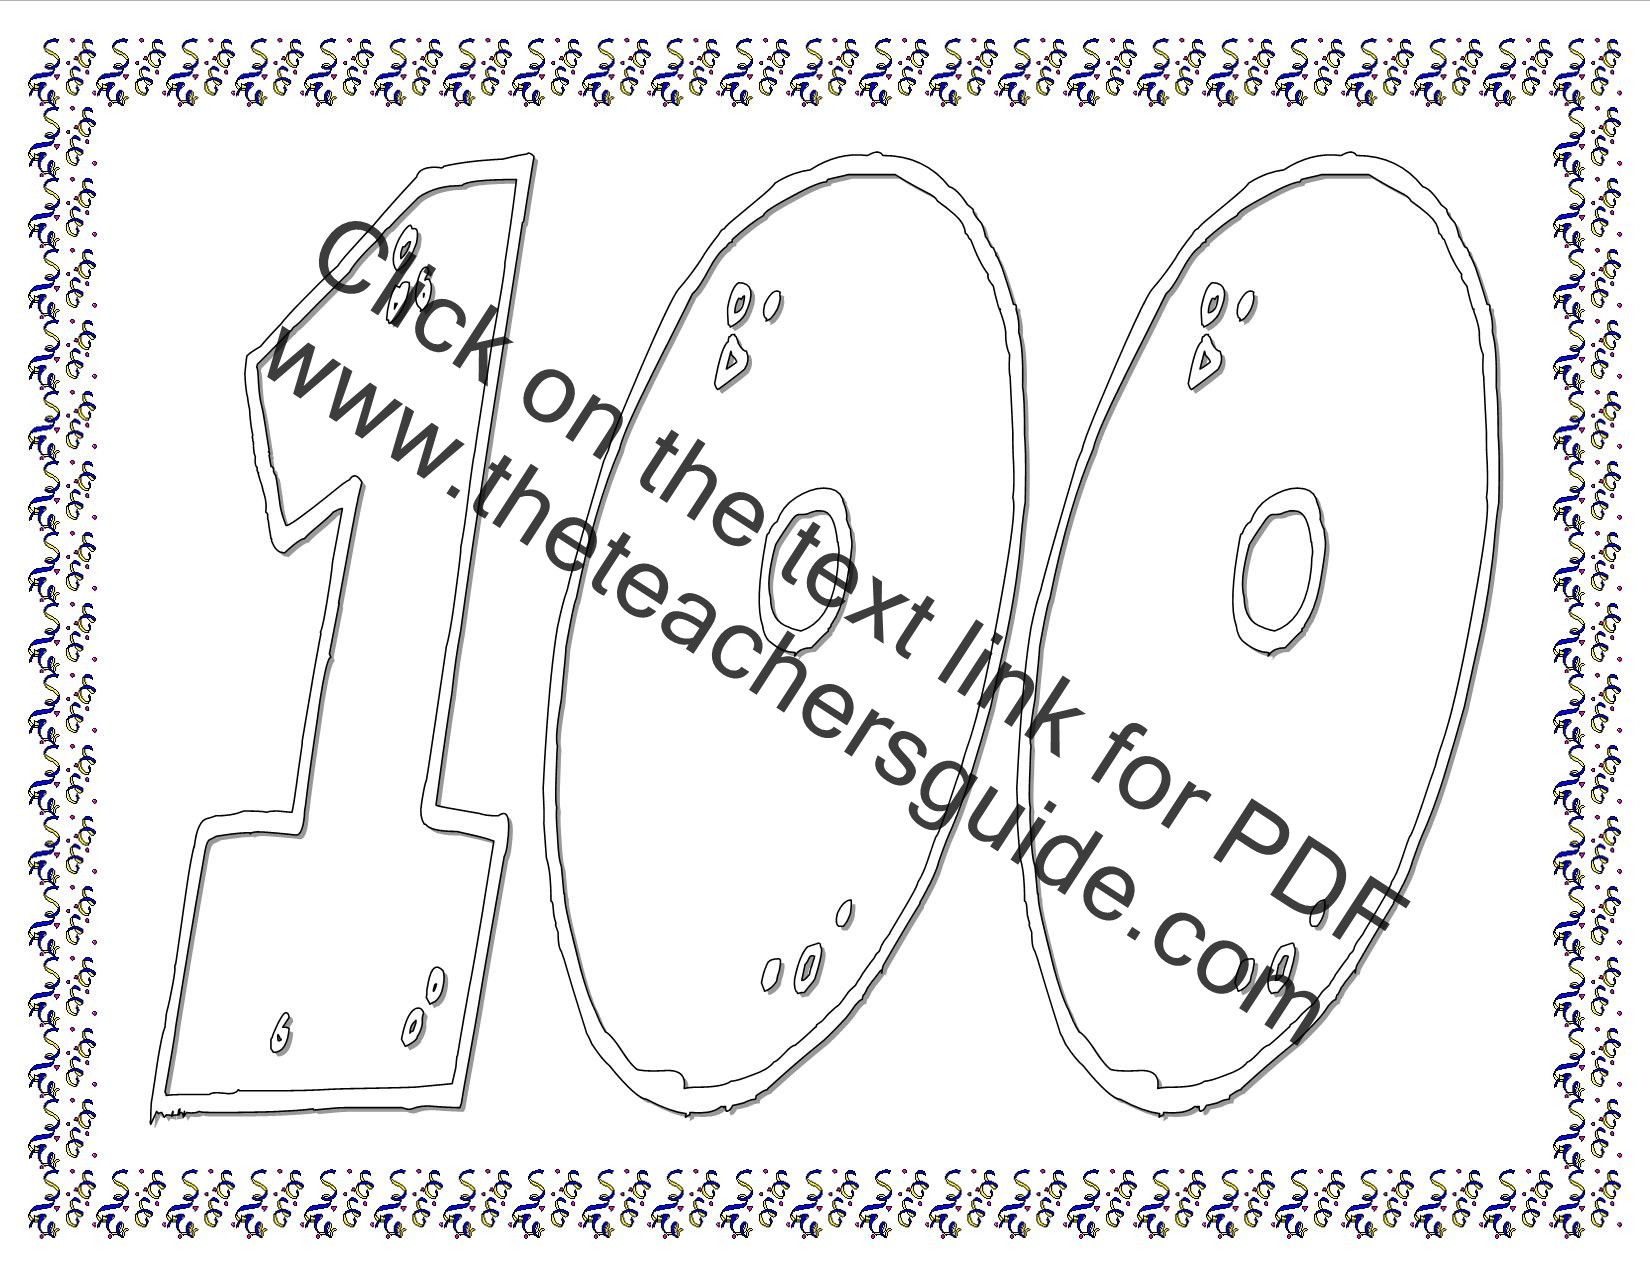 100th Day Of School Worksheets 100th Day Of School Worksheets and Printouts